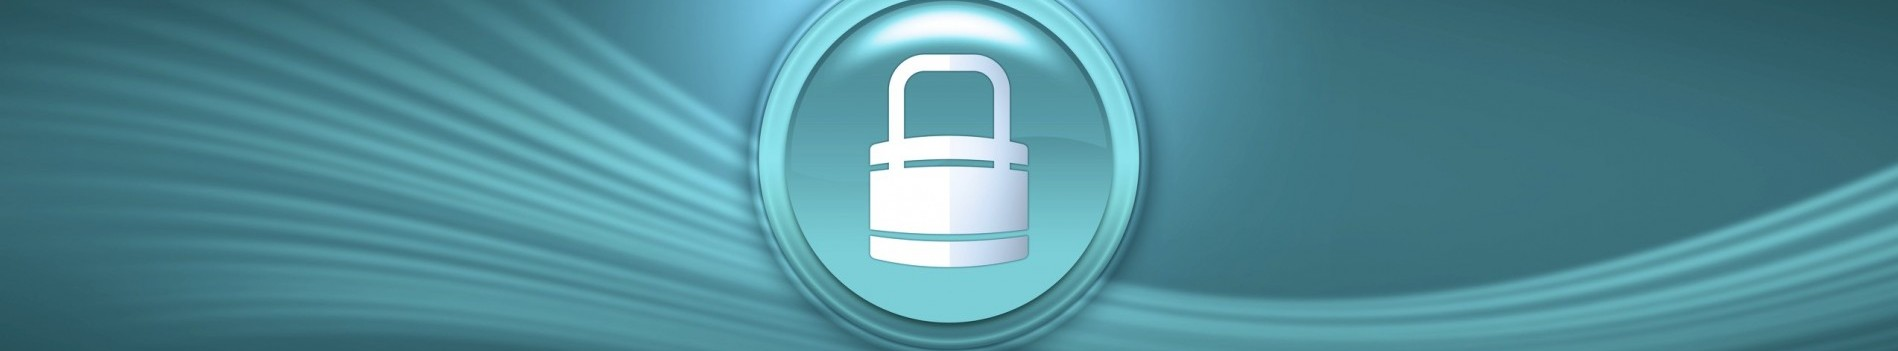 Network-Security-Support-e1426588442322